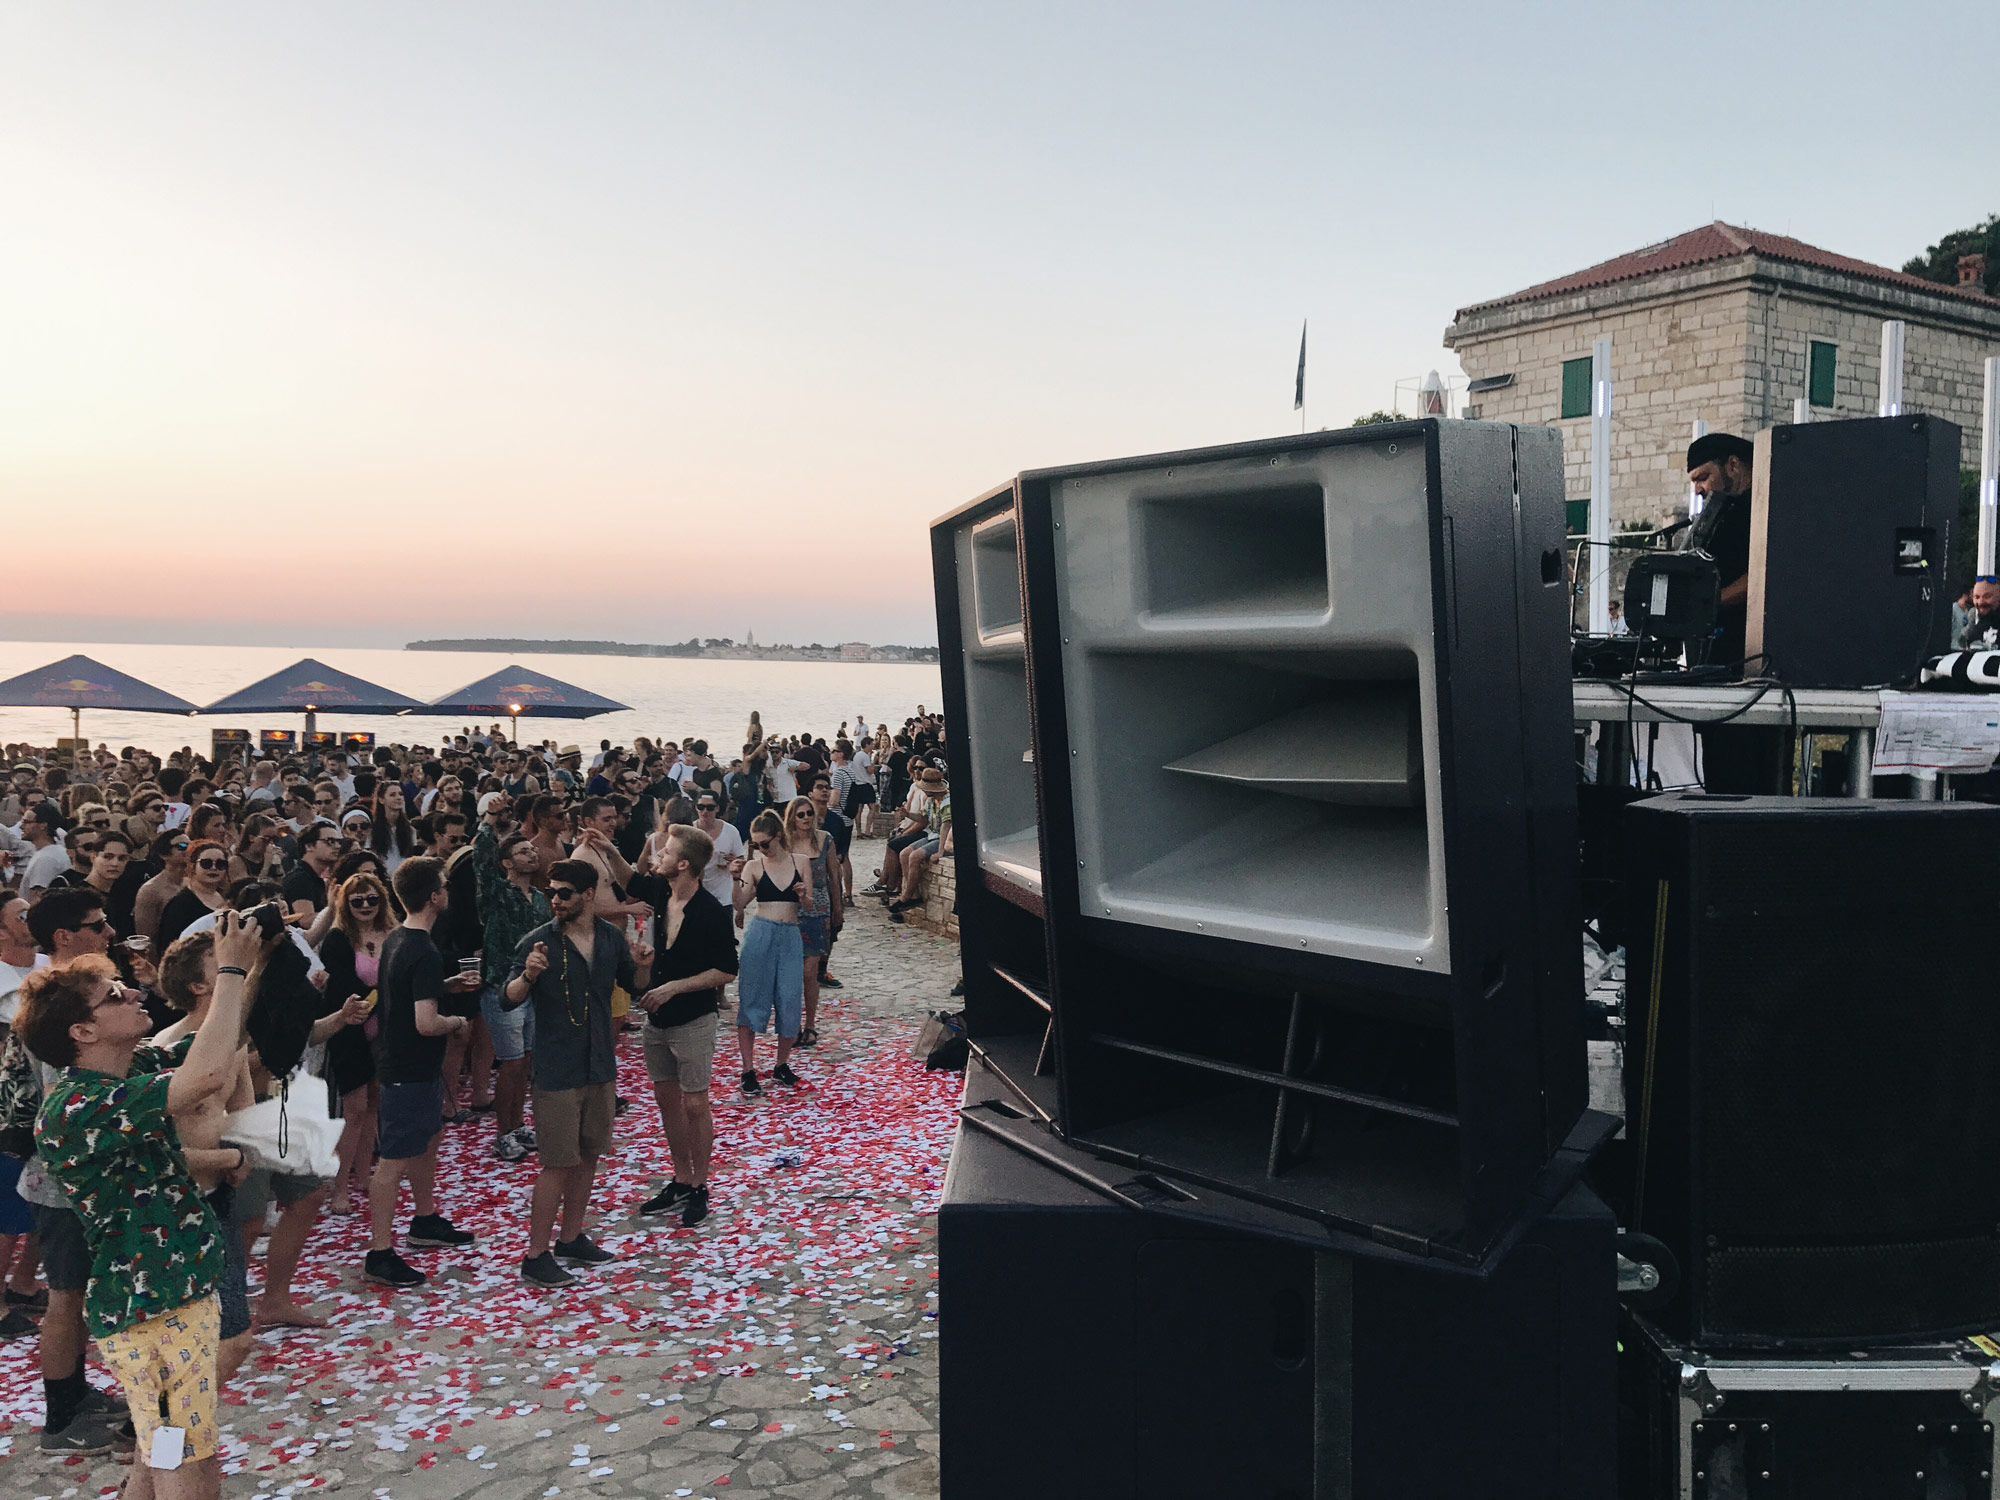 Lighthouse Festival 2017, Porec, Zalando, MainStage, Party, Sunset